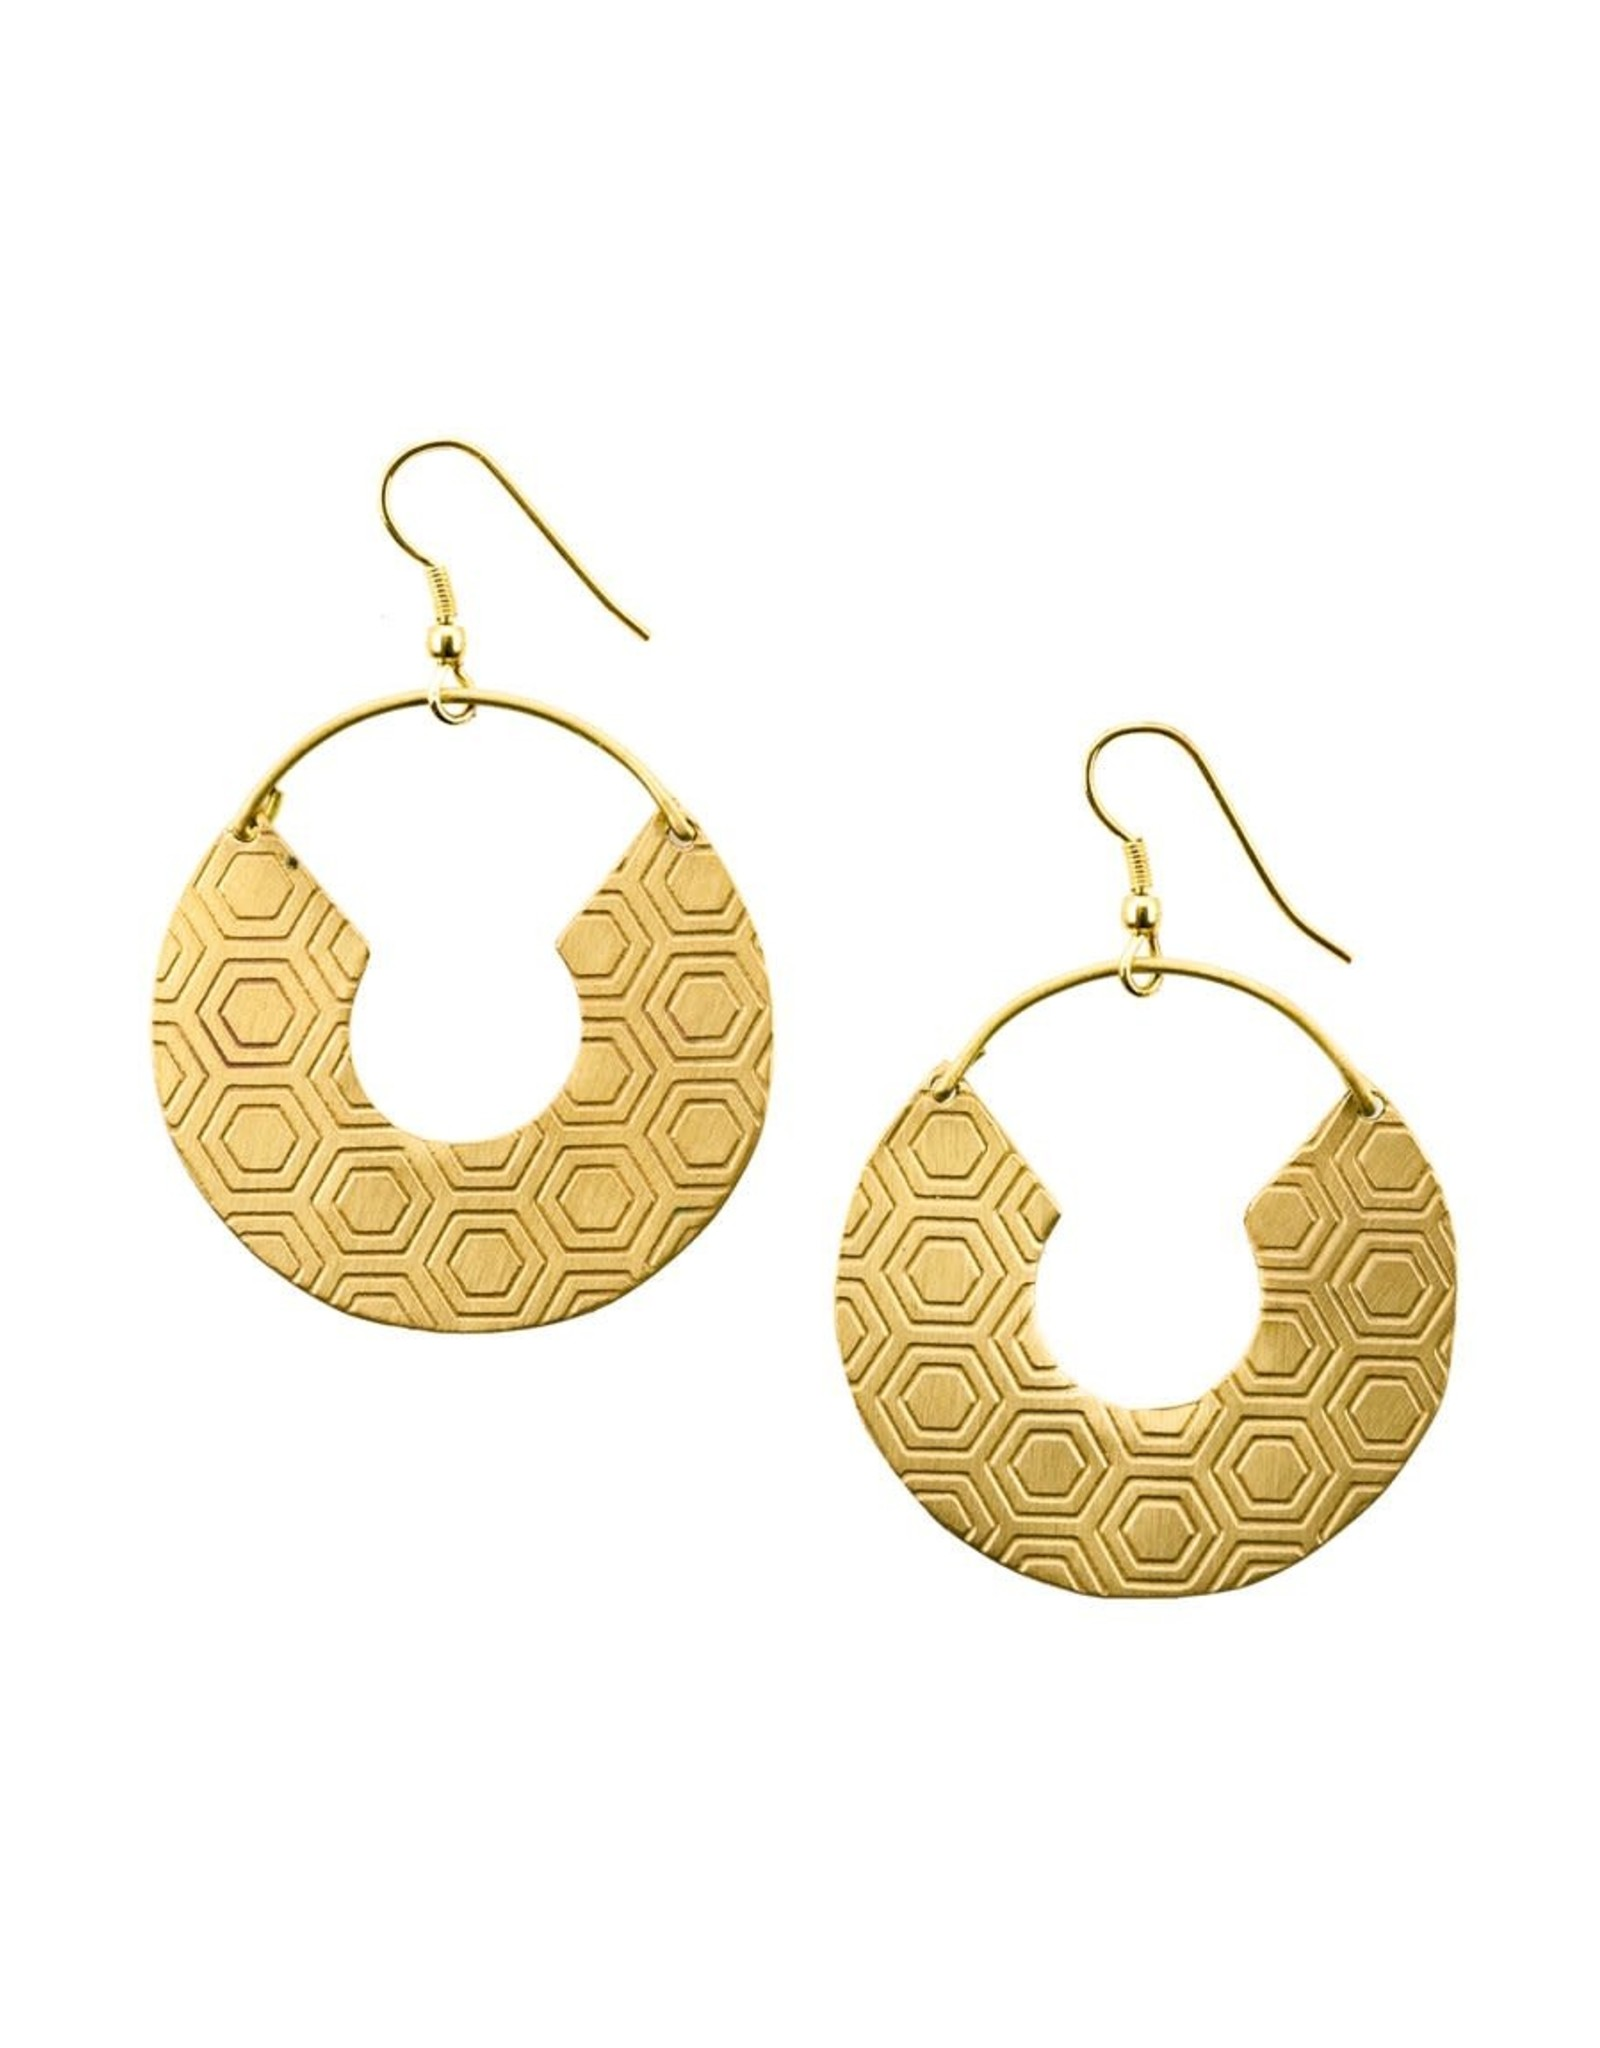 Matr Boomie Jaladhi earrings gold honeycomb